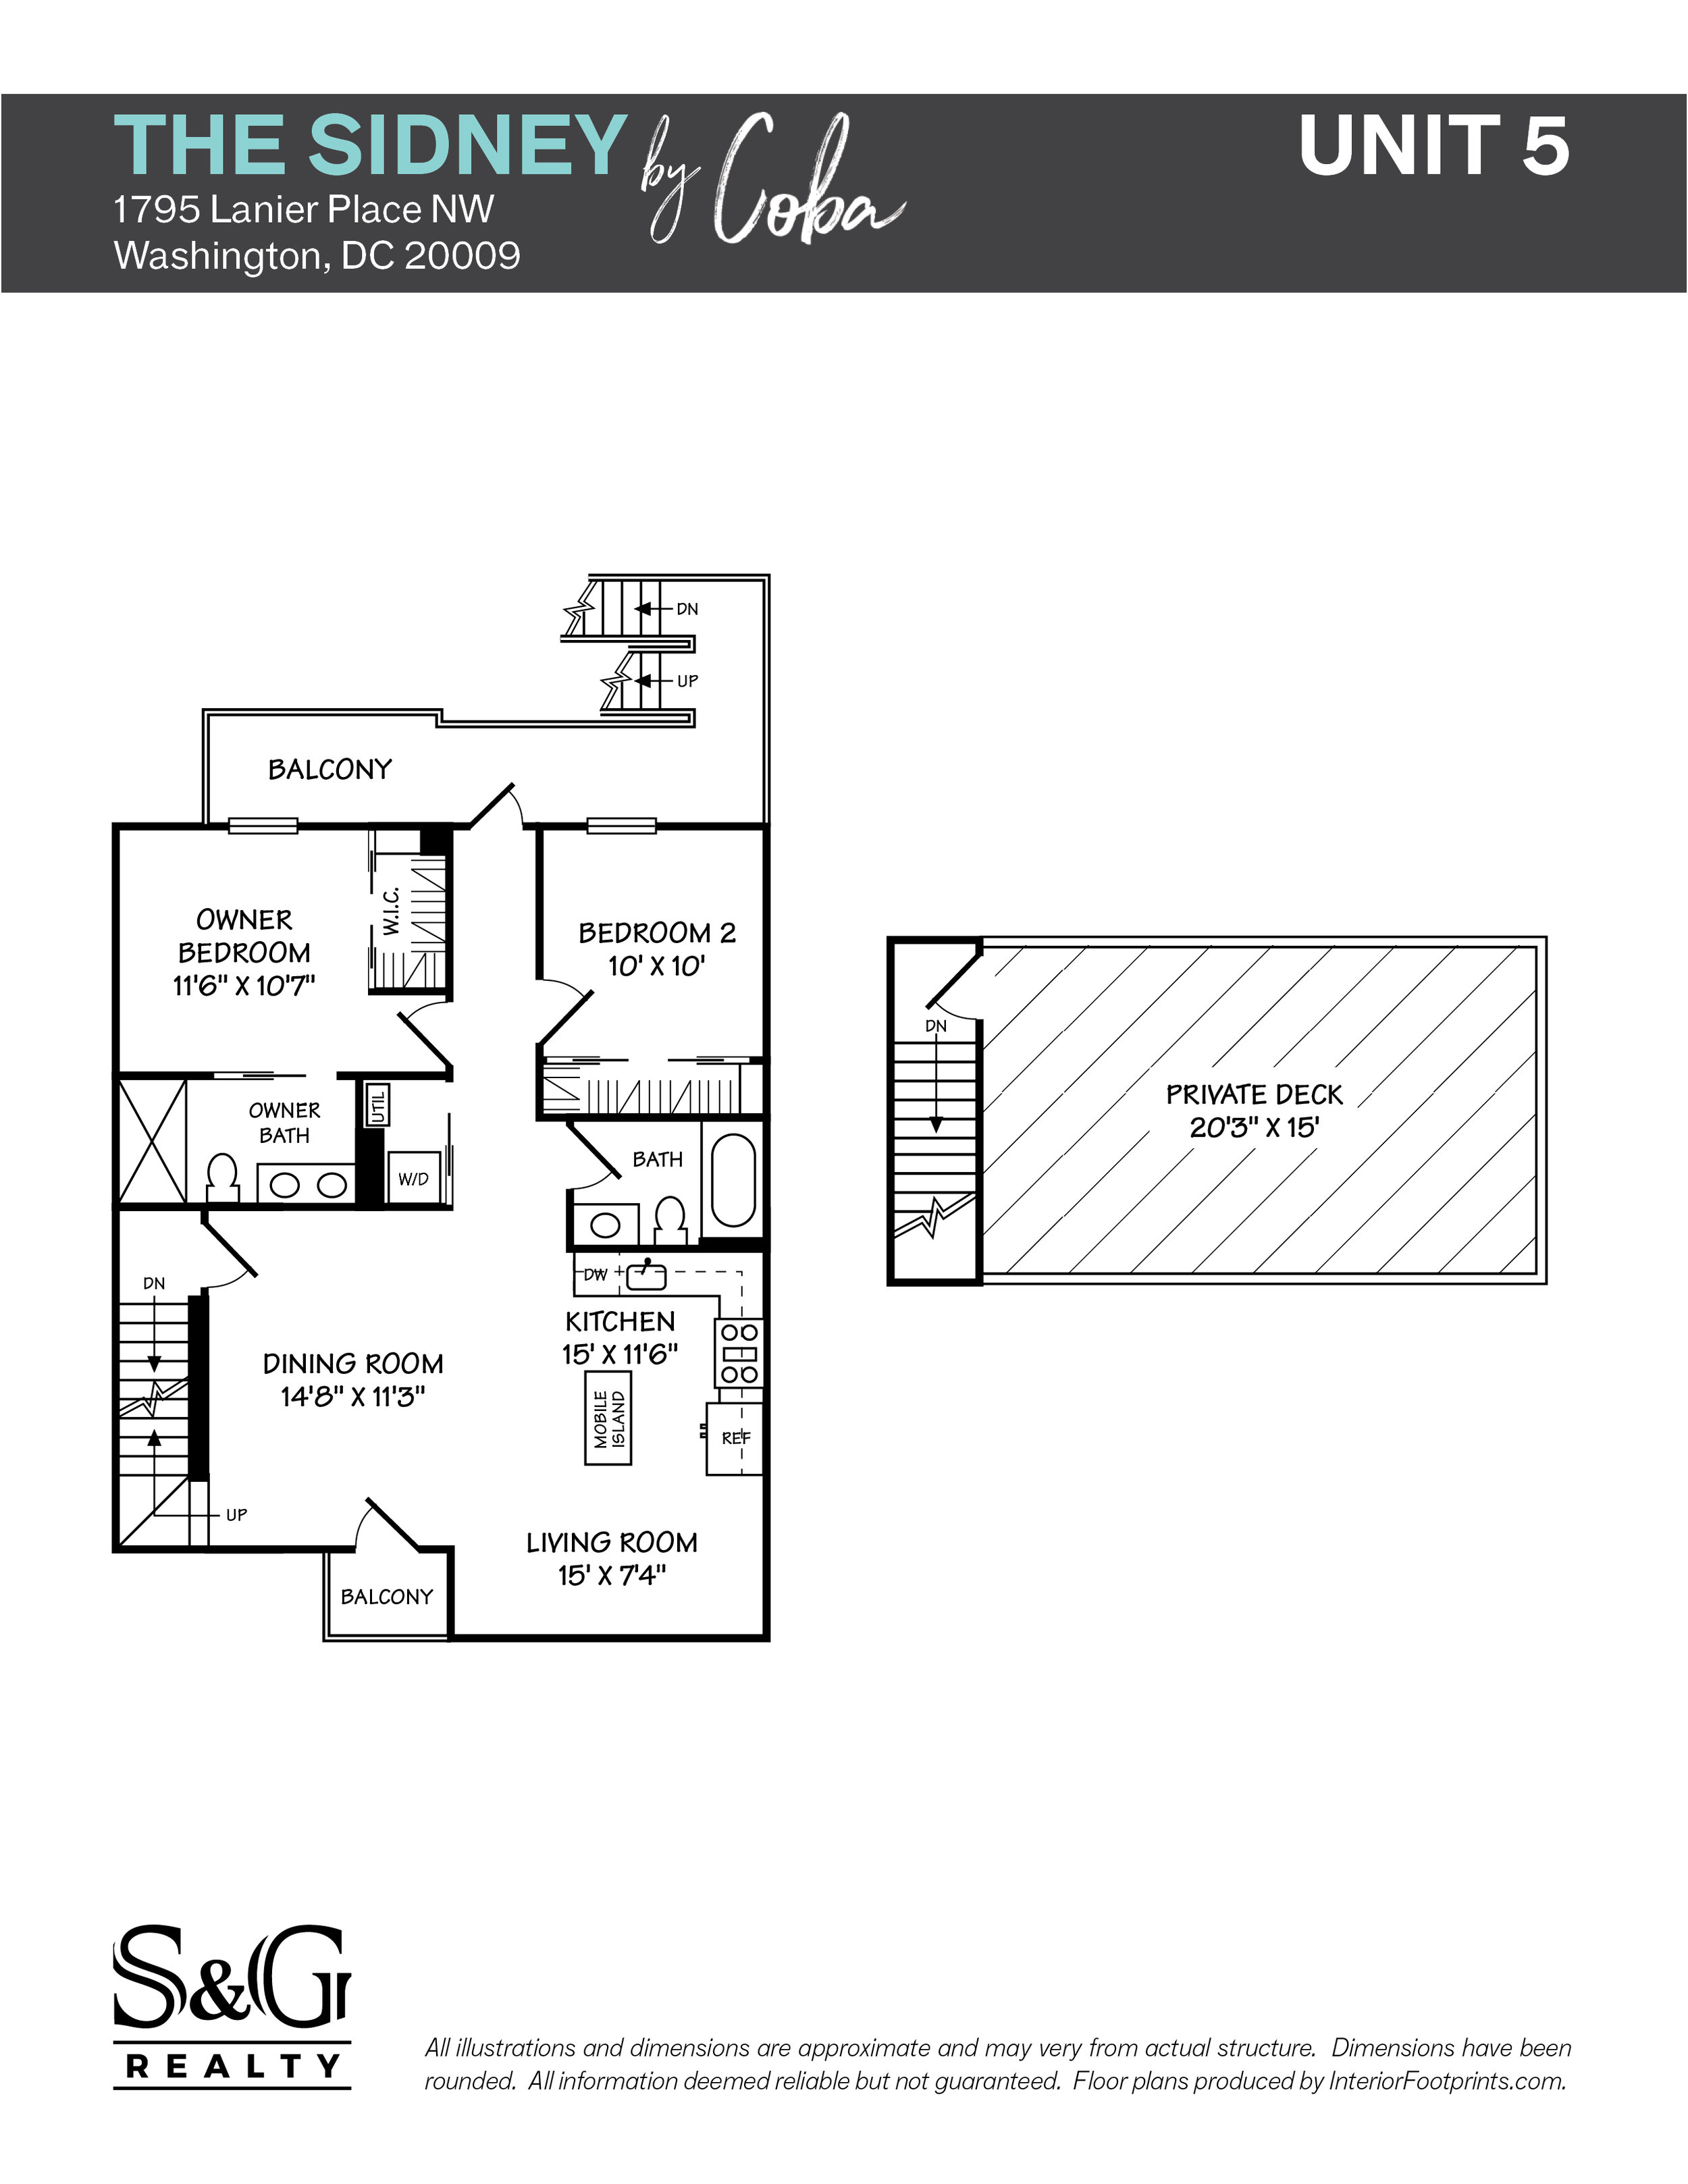 1795 Lanier Pl NW - Floor Plans - Unit 5.jpg